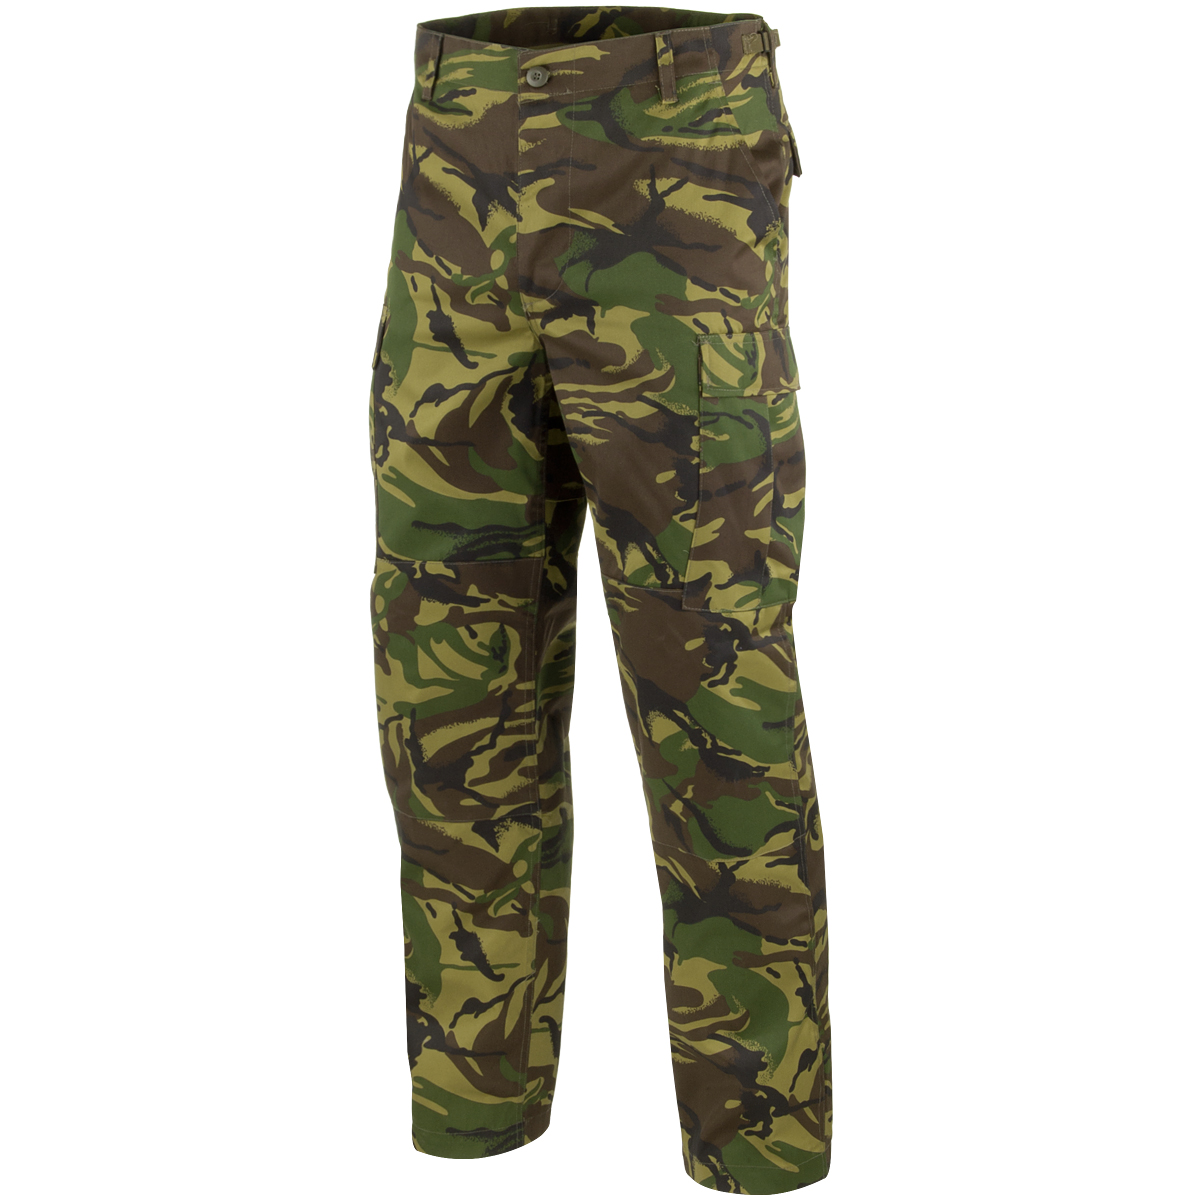 d9fe0bae9db714 Details about MIL-TEC ARMY COMBAT MENS CARGO PANTS MILITARY RANGER TROUSERS  BRITISH DPM CAMO